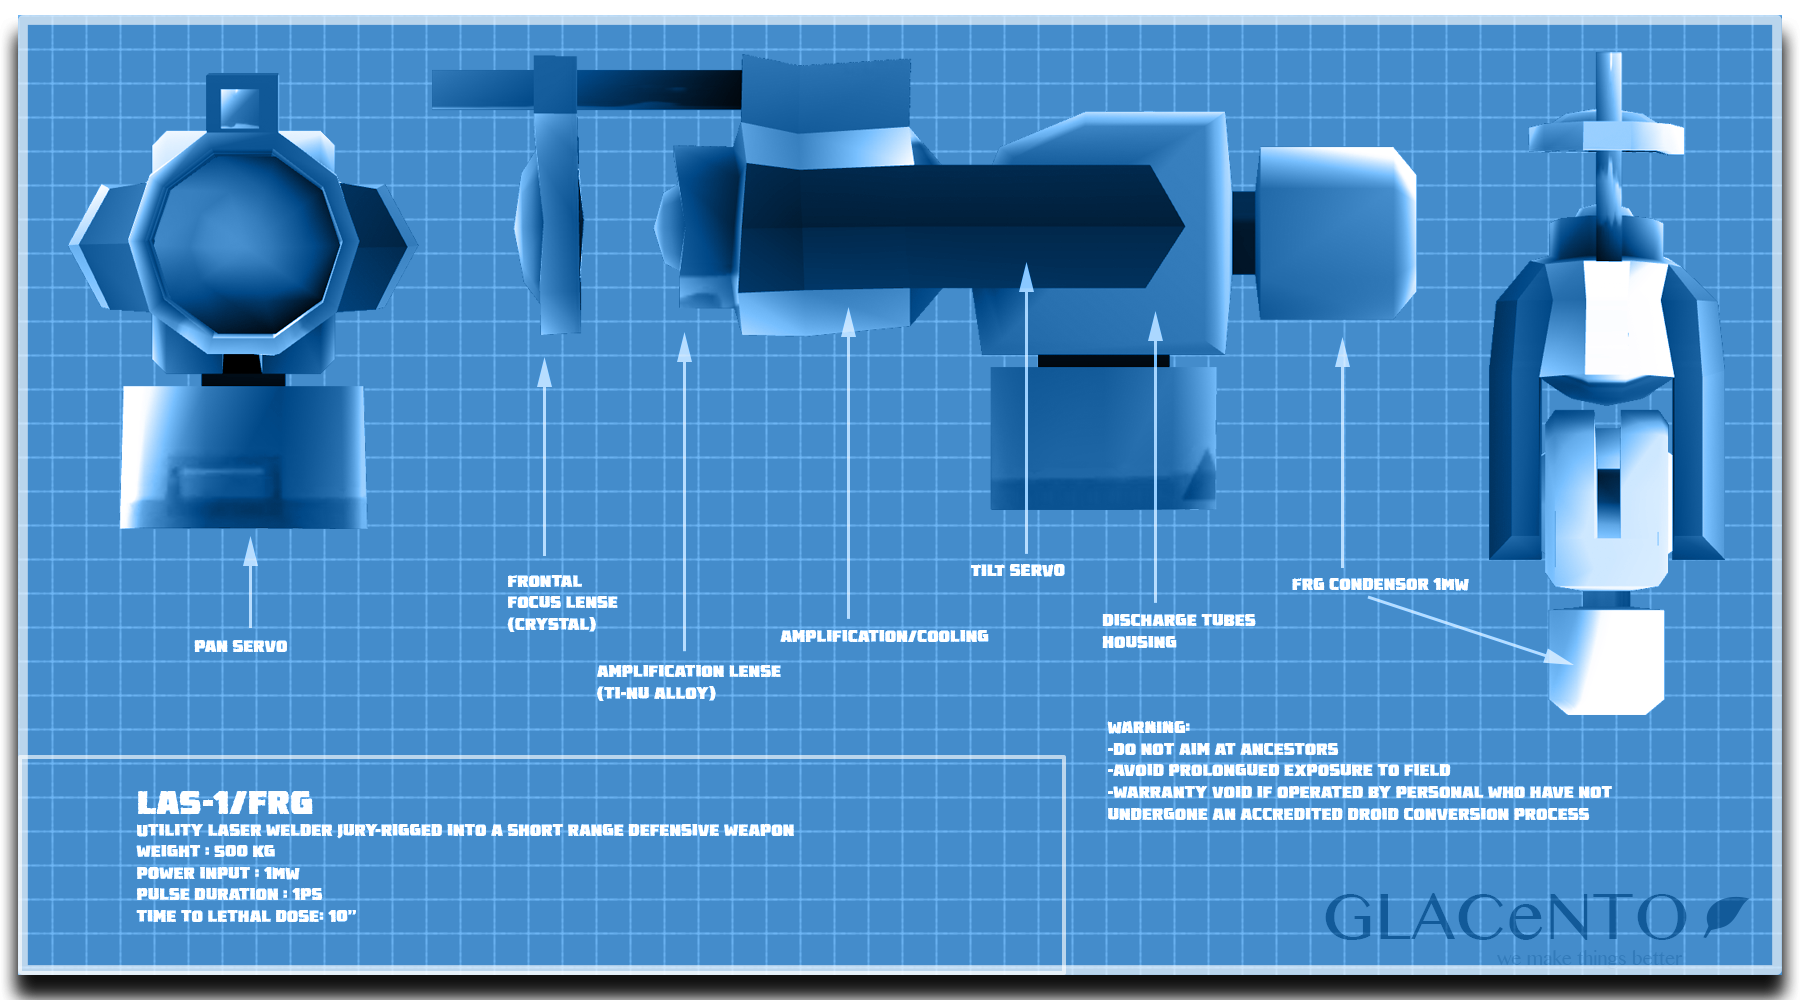 Blueprint for the field resonance generator image mcdroid mod db report rss blueprint for the field resonance generator view original malvernweather Choice Image